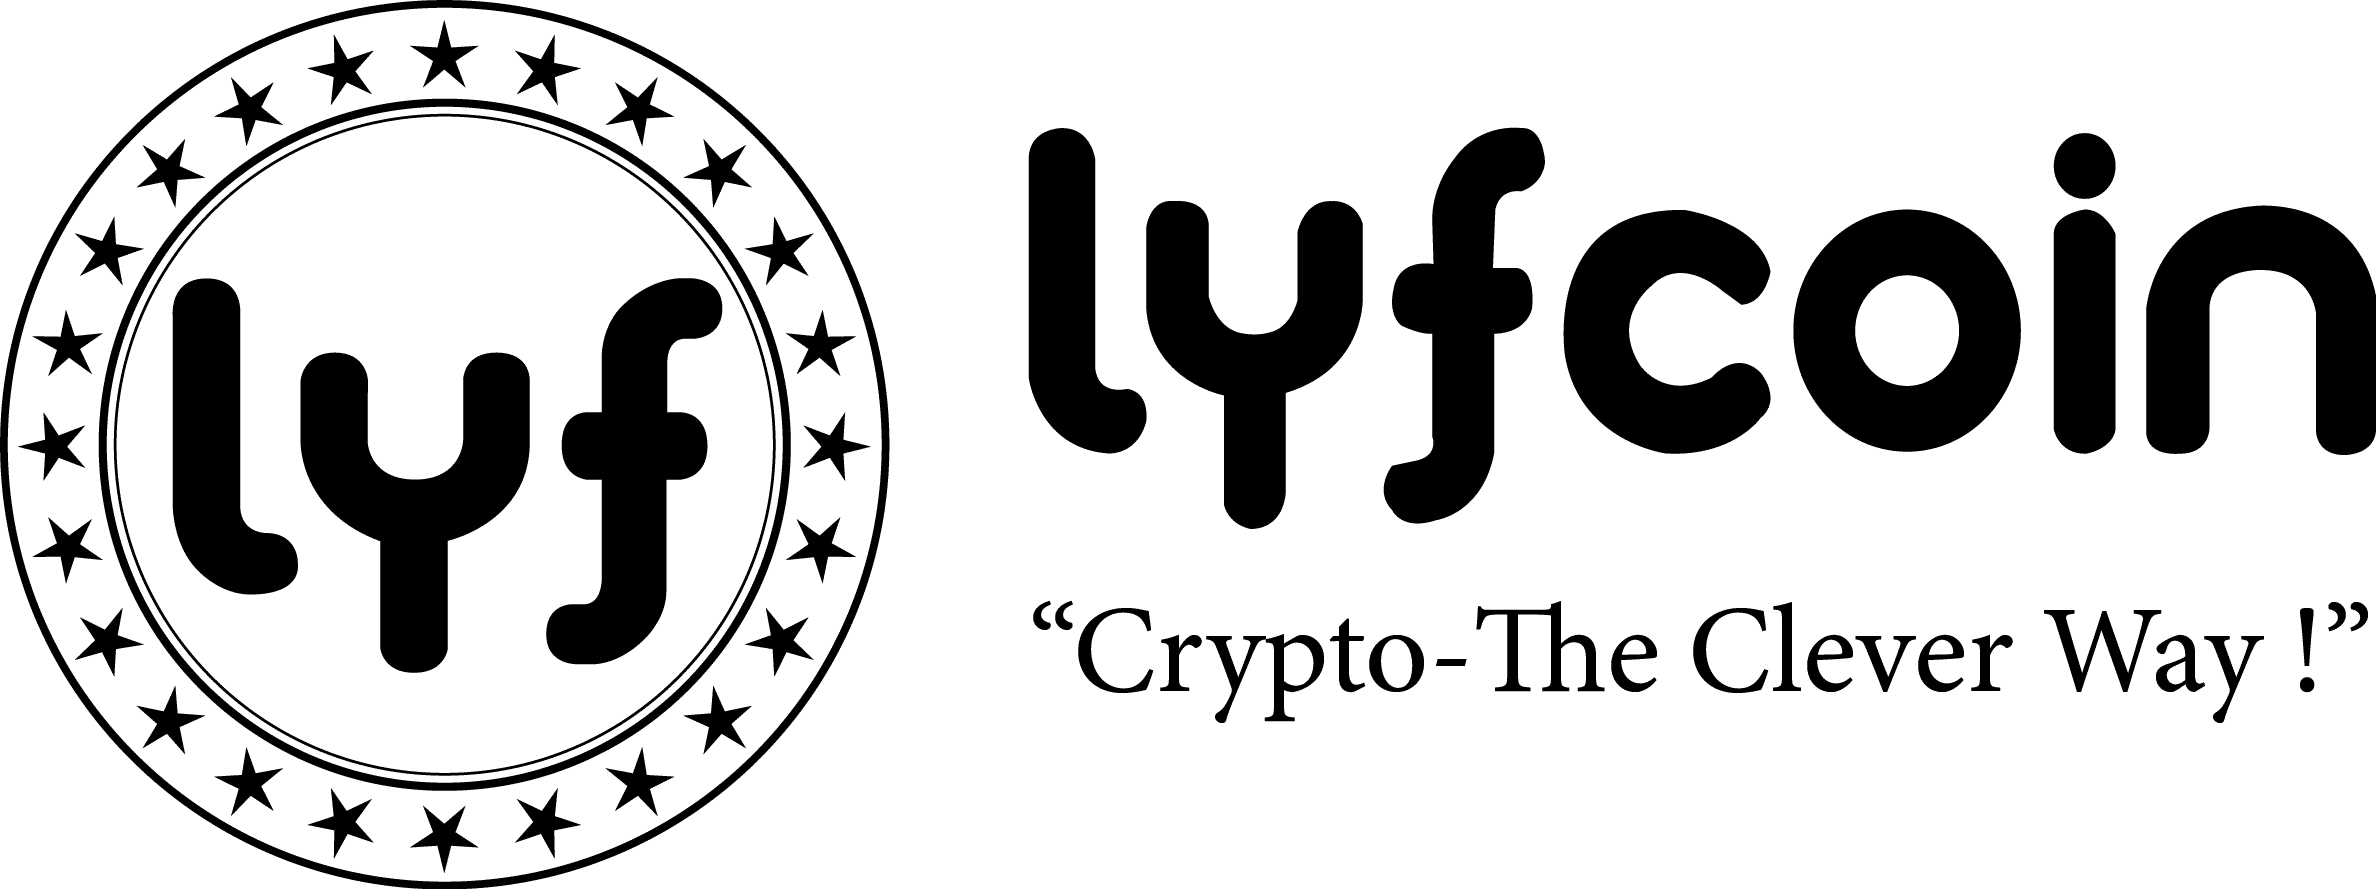 Is Lyfcoin a scam? Project discussion